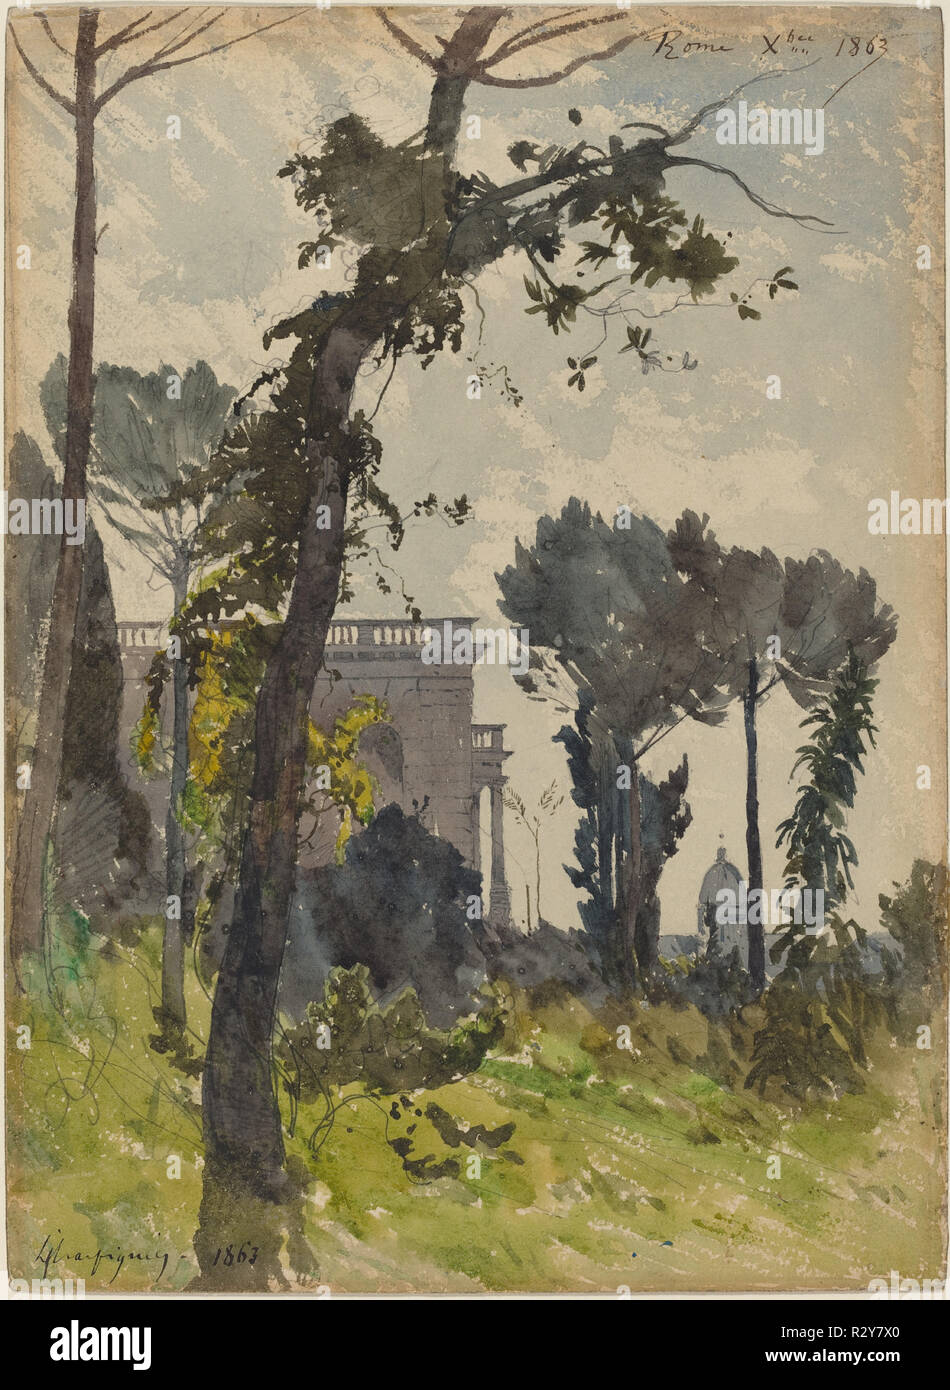 View of the Dome of Saint Peter's, Rome. Dated: 1863. Dimensions: overall: 32.4 x 23.7 cm (12 3/4 x 9 5/16 in.). Medium: watercolor over graphite on wove paper. Museum: National Gallery of Art, Washington DC. Author: Henri-Joseph Harpignies. - Stock Image